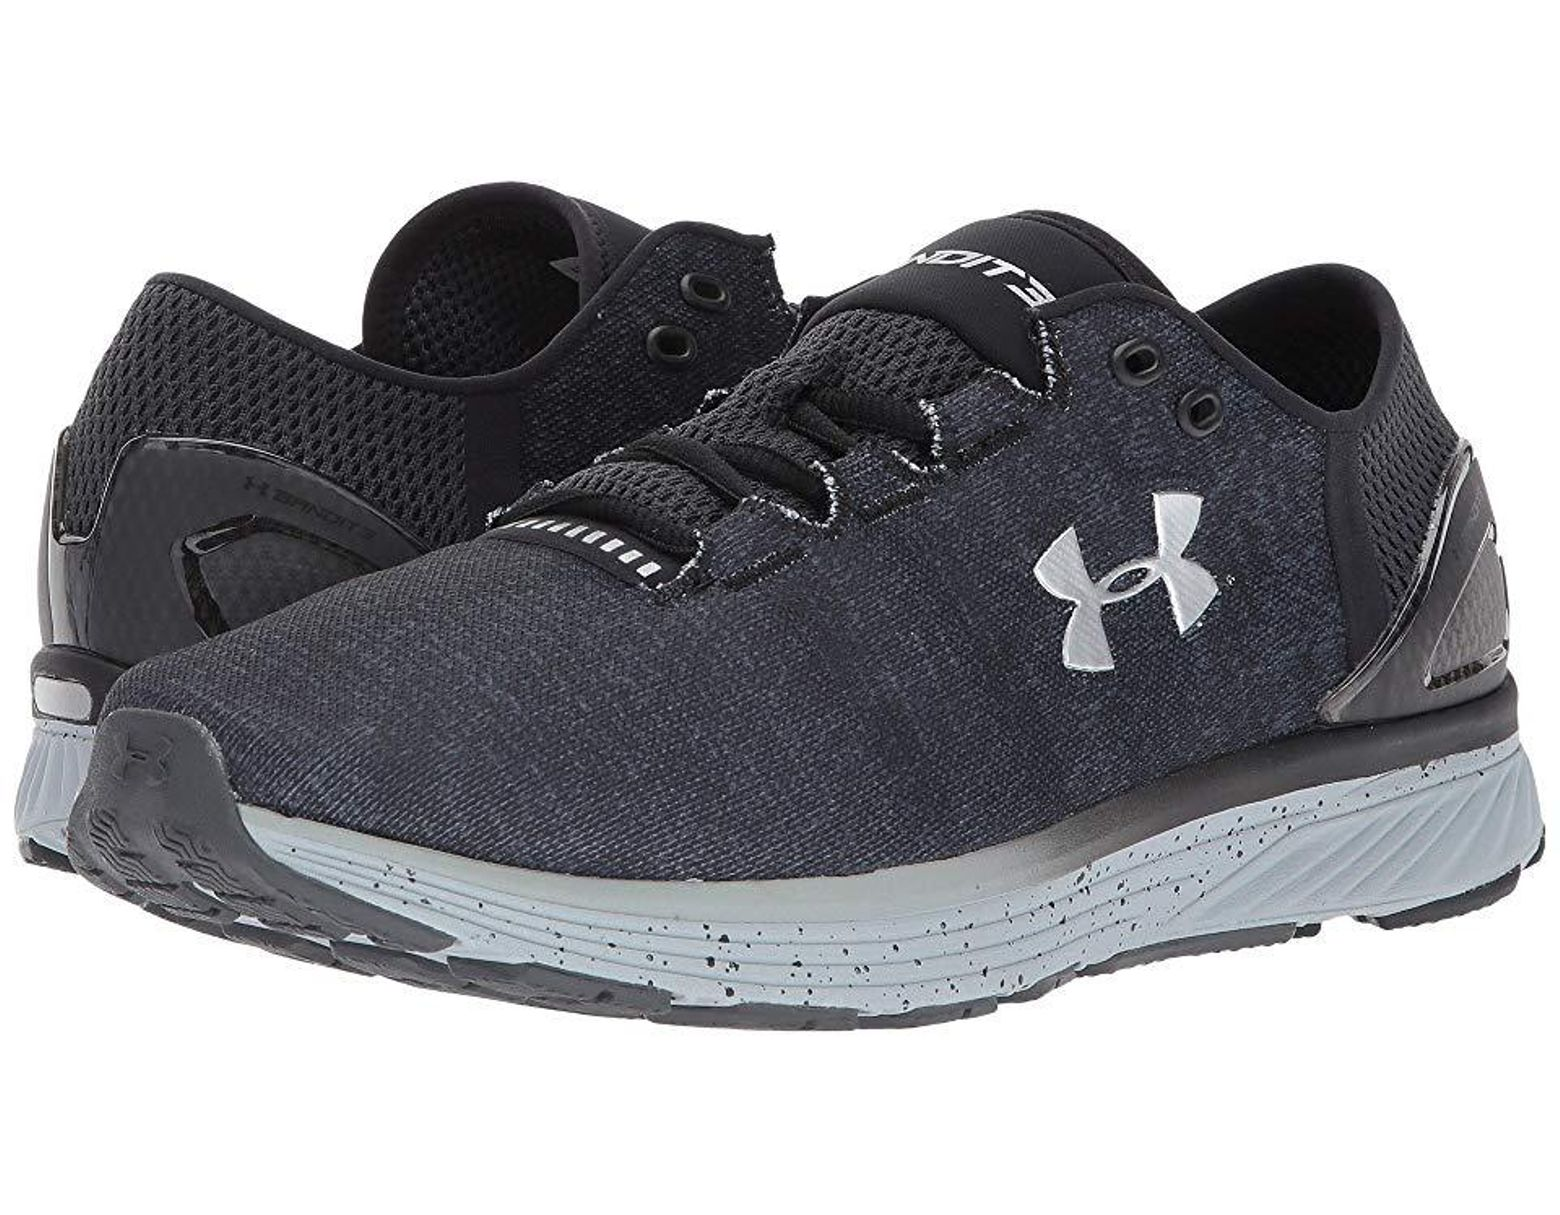 cheap for discount 97391 35b7c Under Armour Charged Bandit 3 (stealth Gray/black/msv ...